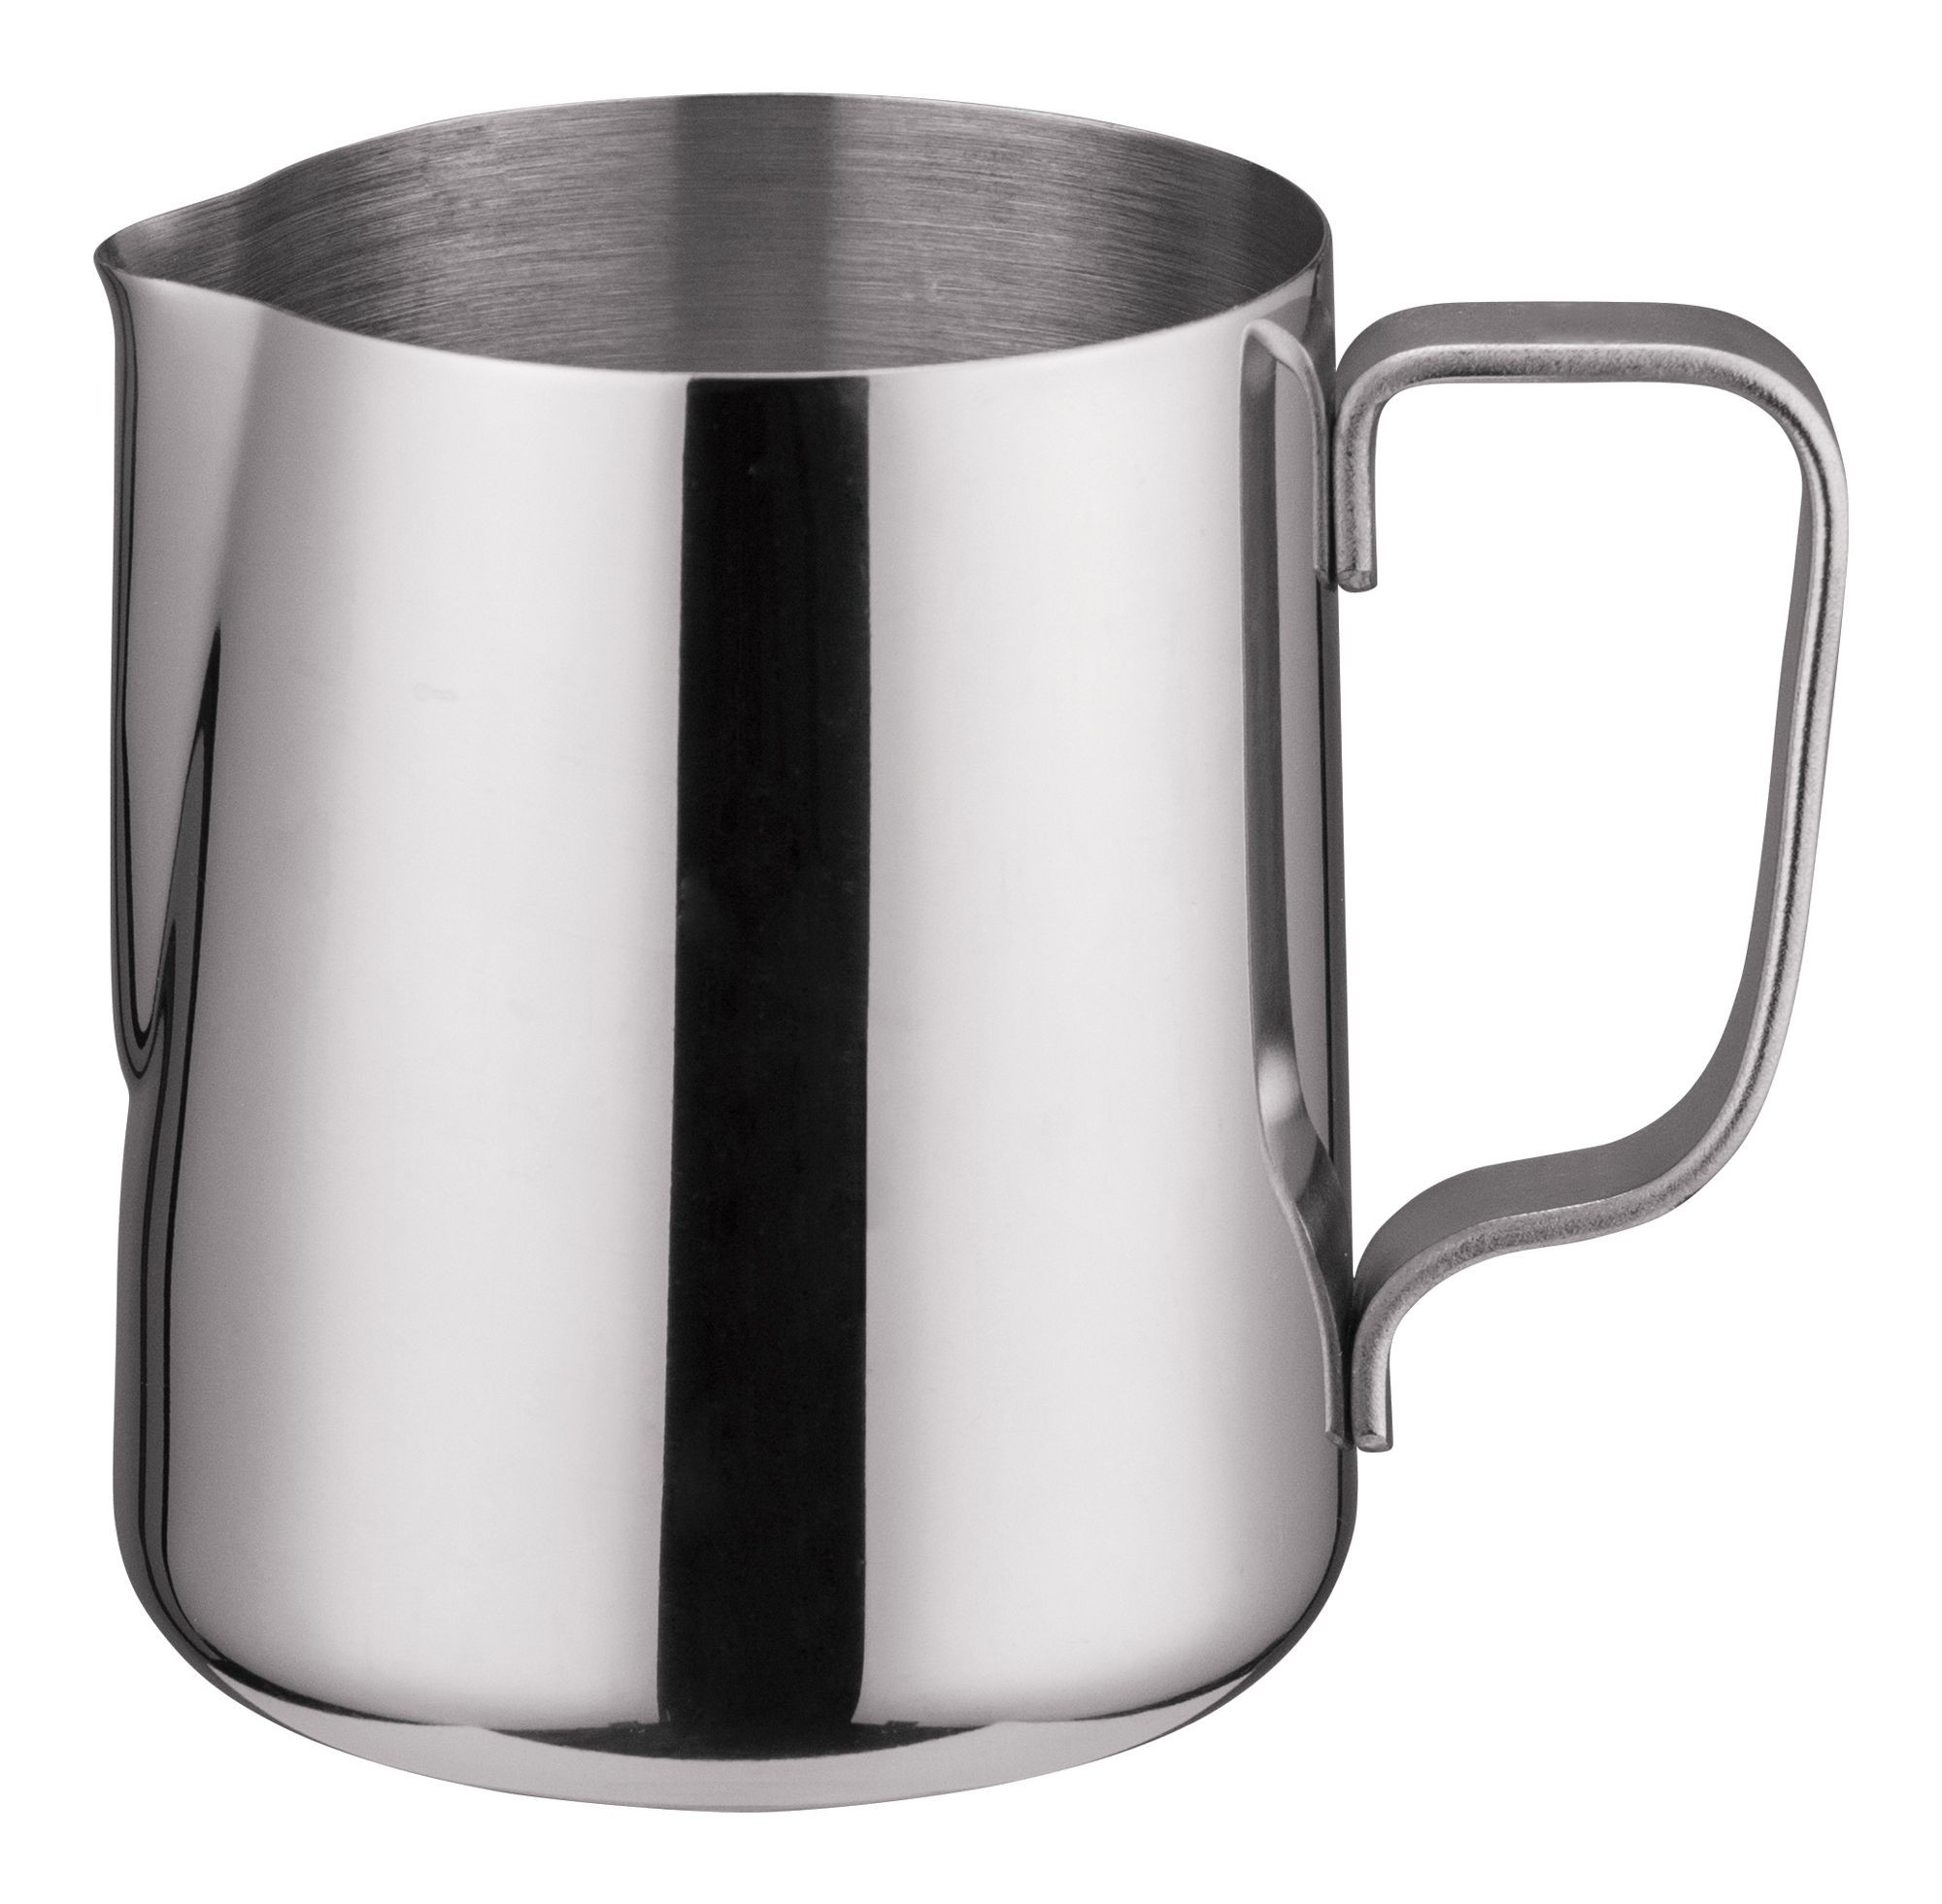 Winco WP-14 Stainless Steel 14 oz. Frothing Pitcher